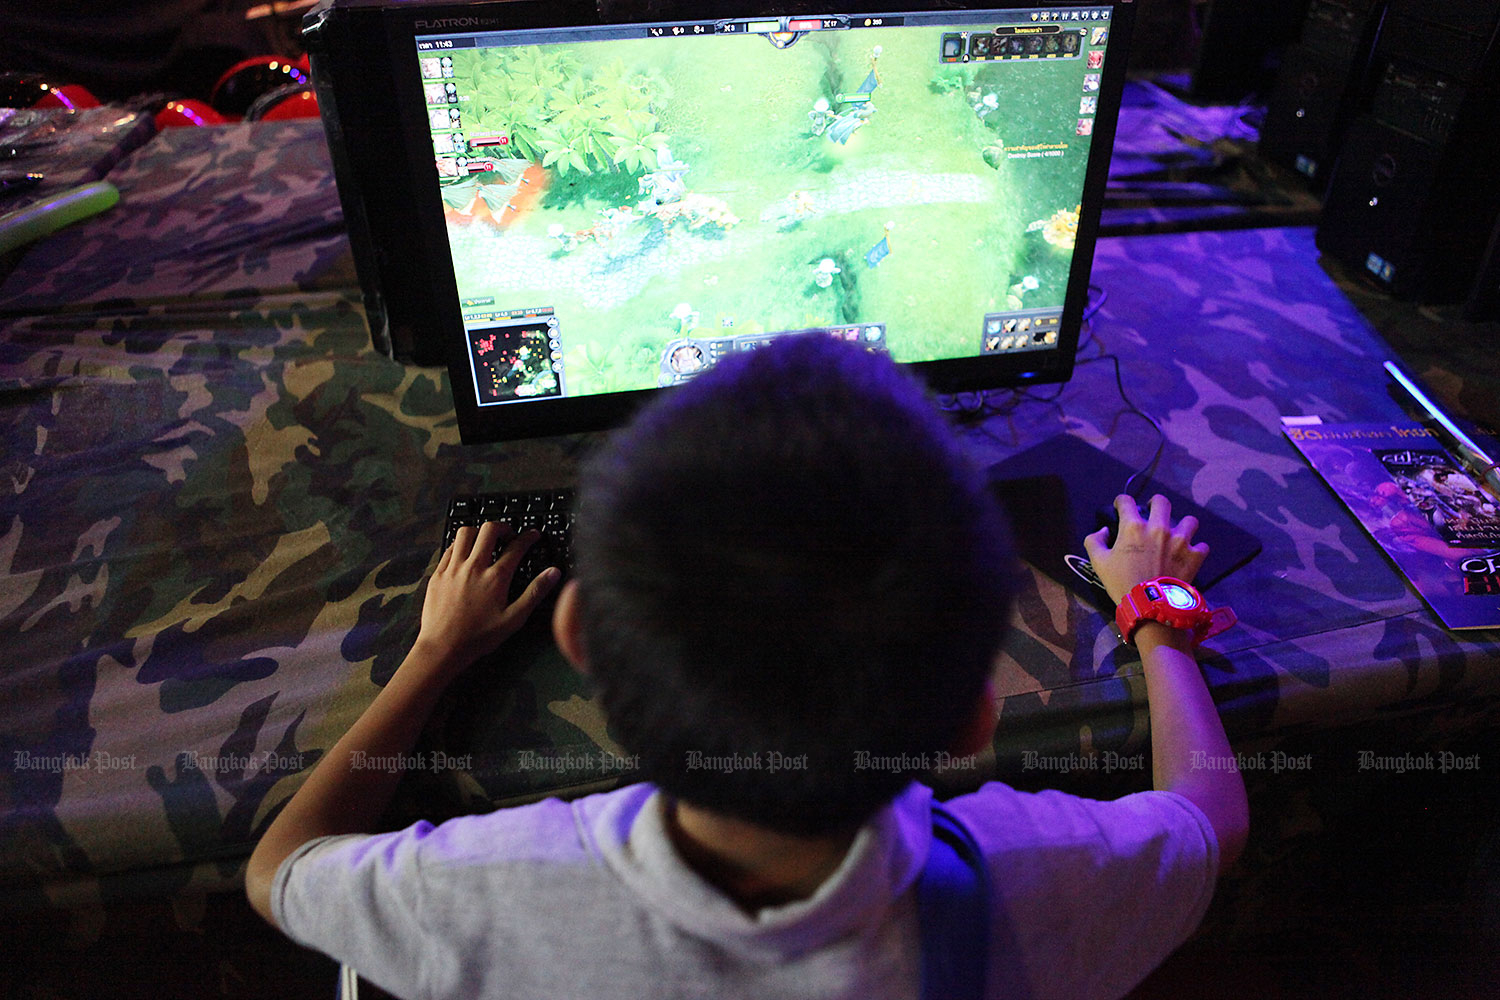 3-5 hours of gaming time on average for Thai gamers. (Bangkok Post file photo)